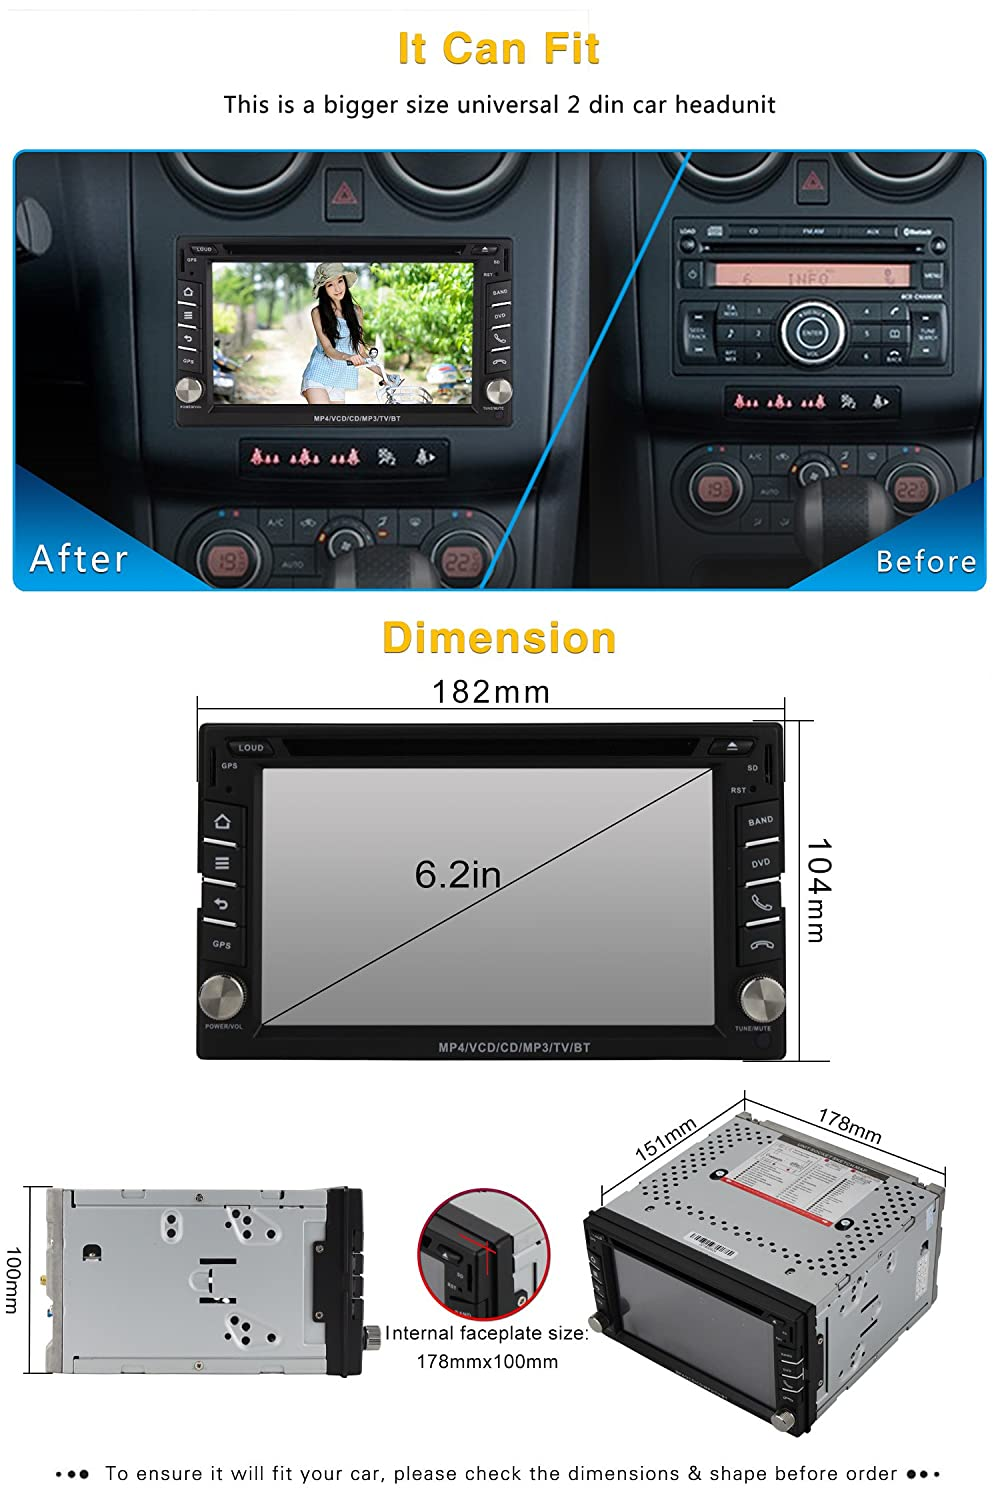 Volsmart Quad Core Android 51 Car Stereo Double Din Dvd 2007 Dodge Ram Amplifier Radio C1 20 Way Connector Pin Outs Gps Support Mirror Link Obd2 Free Map Camera Electronics